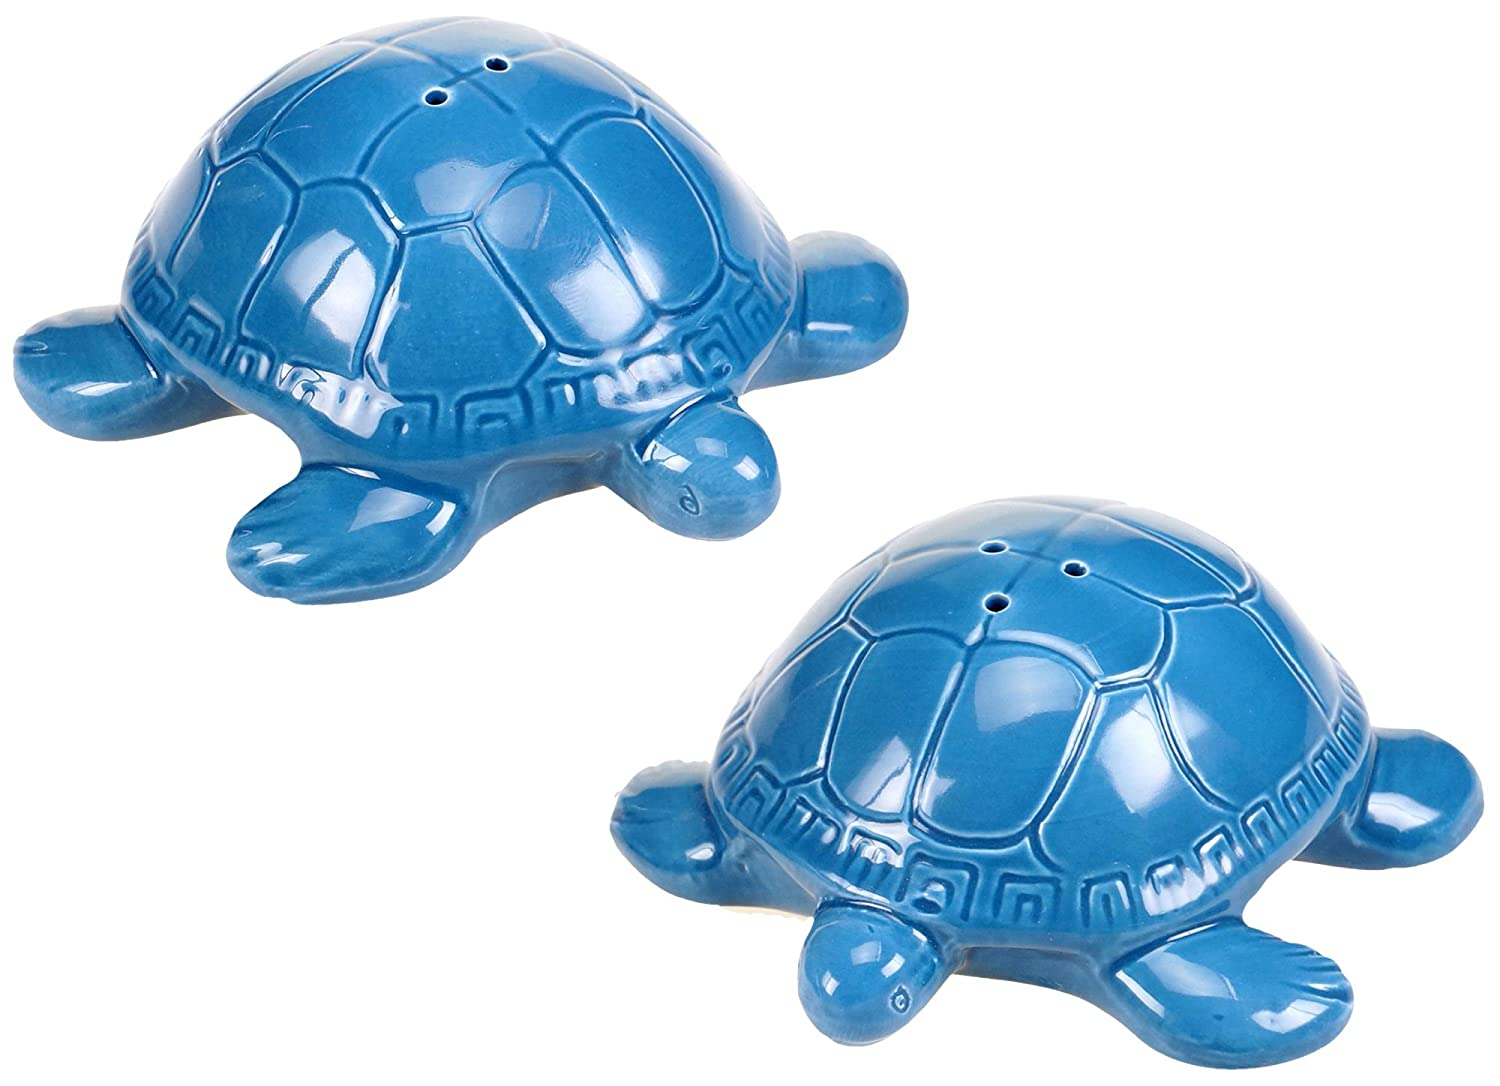 Certified International Sea Life 3-D Turtle Salt /& Pepper Set 1.75